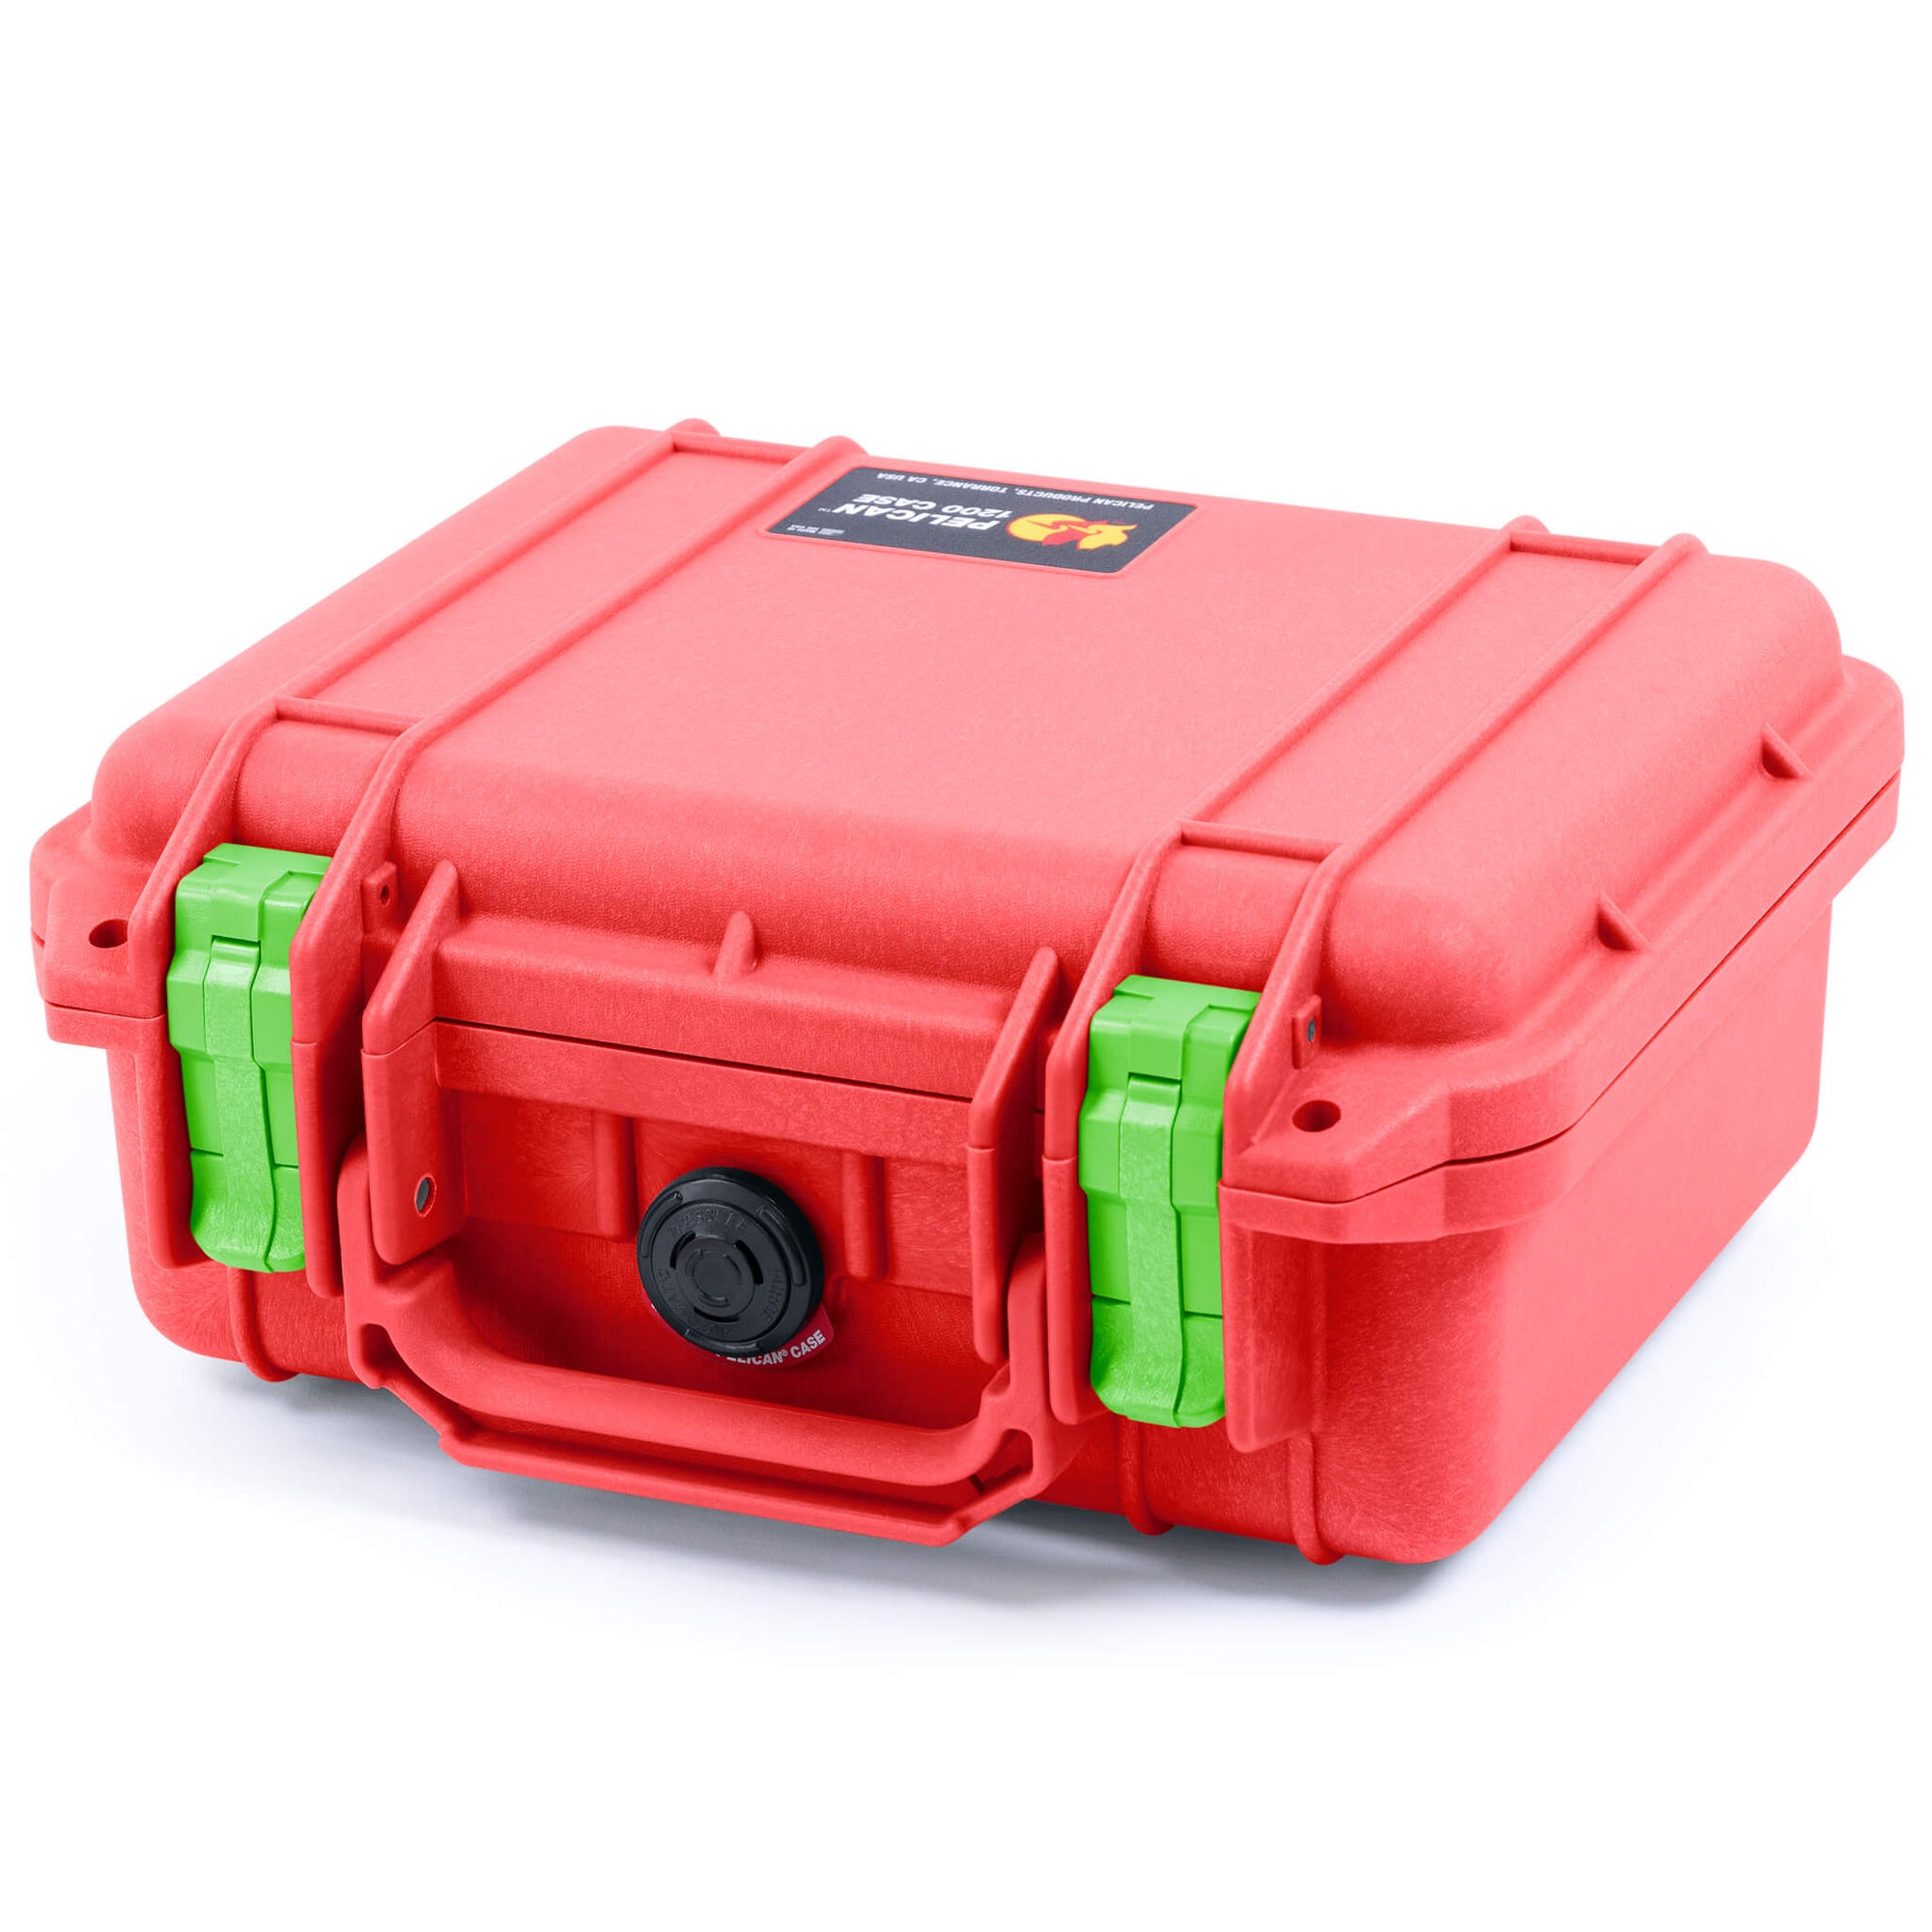 Pelican 1200 Case, Red with Lime Green Handle & Latches - Pelican Color Case